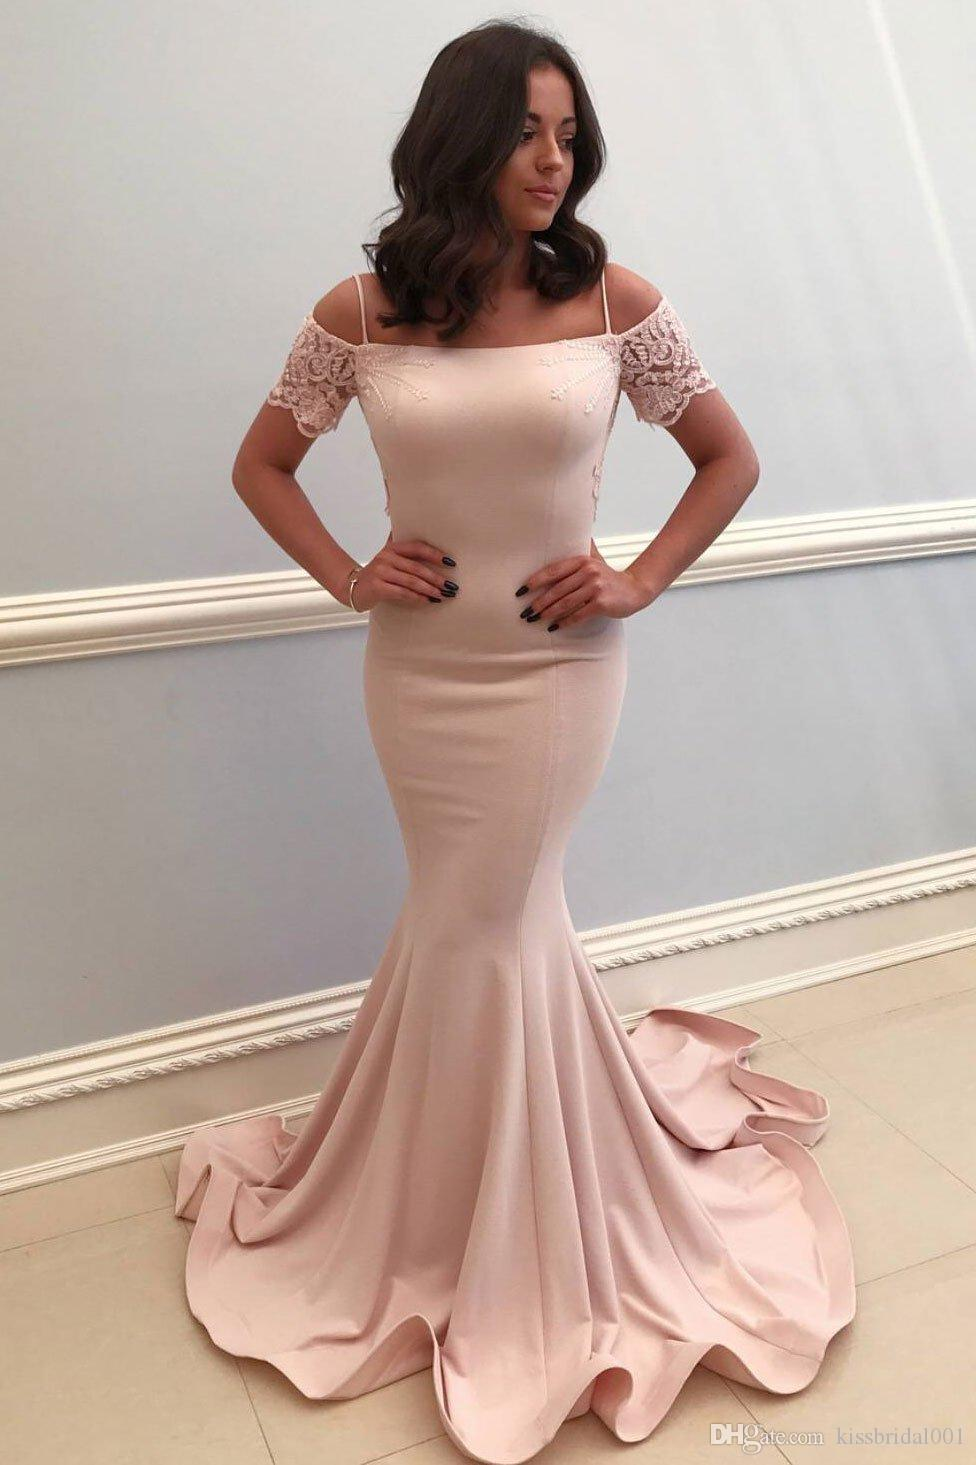 2019 Mermaid Prom Dresses Long Off the Shoulder Short Sleeve Evening Gowns Cheap Women Cocktail Party Dress Celebrity Formal Gown